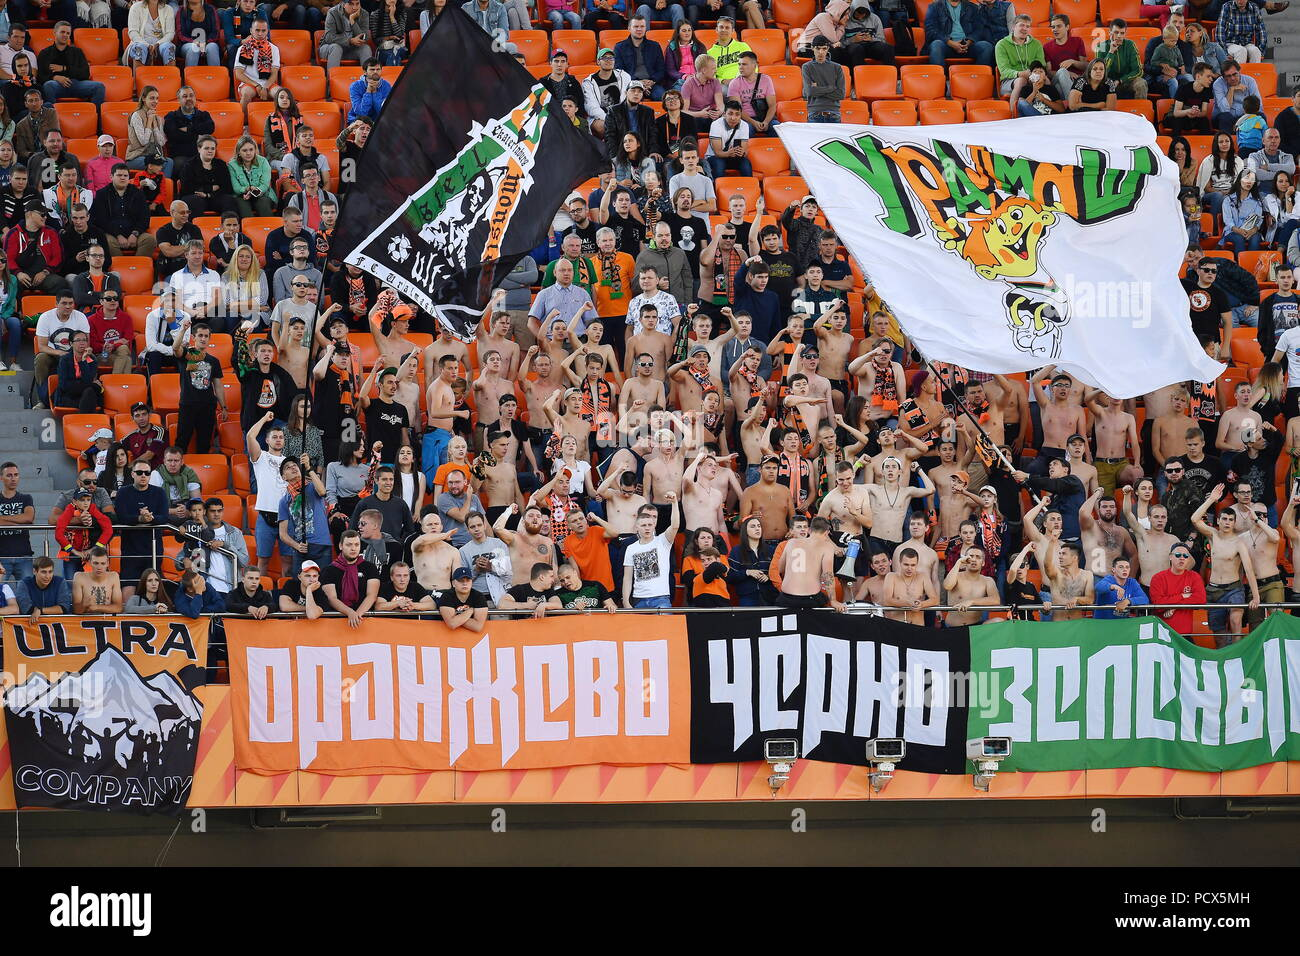 Yekaterinburg Russia 04th Aug 2018 Yekaterinburg Russia August 4 2018 Ural Yekaterinburg S Supporters Rooting For Their